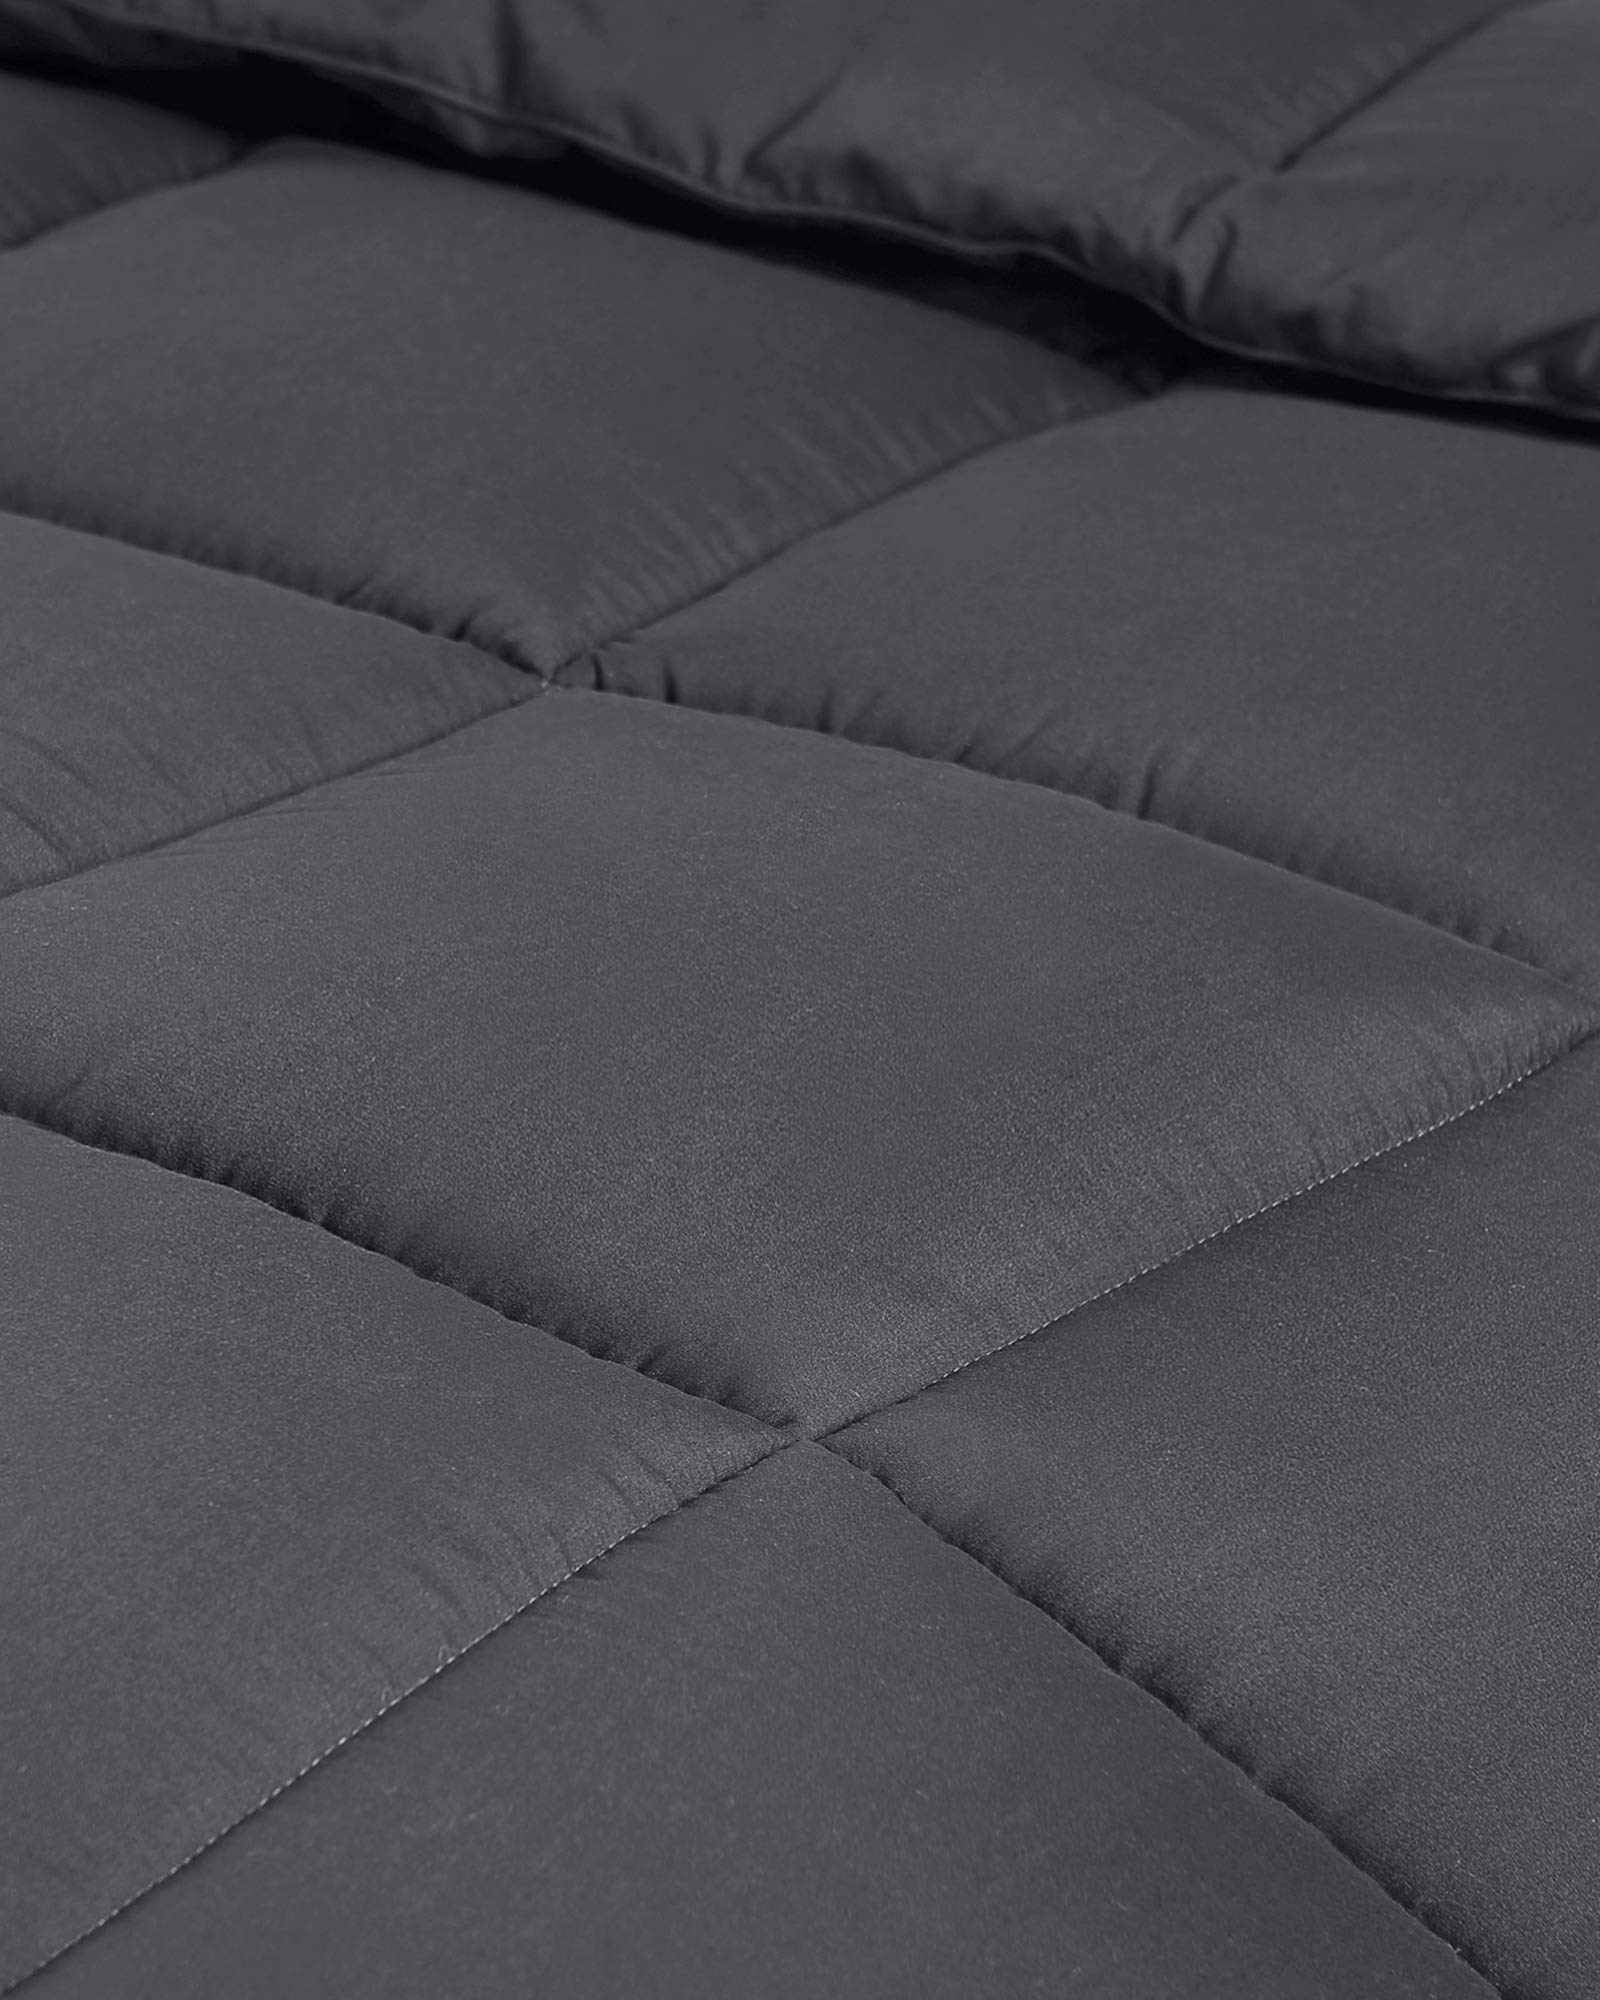 Utopia Bedding All Season 250 GSM Comforter - Soft Down Alternative Comforter - Plush Siliconized Fiberfill Duvet Insert - Box Stitched (Full/Queen, Grey) by Utopia Bedding (Image #7)